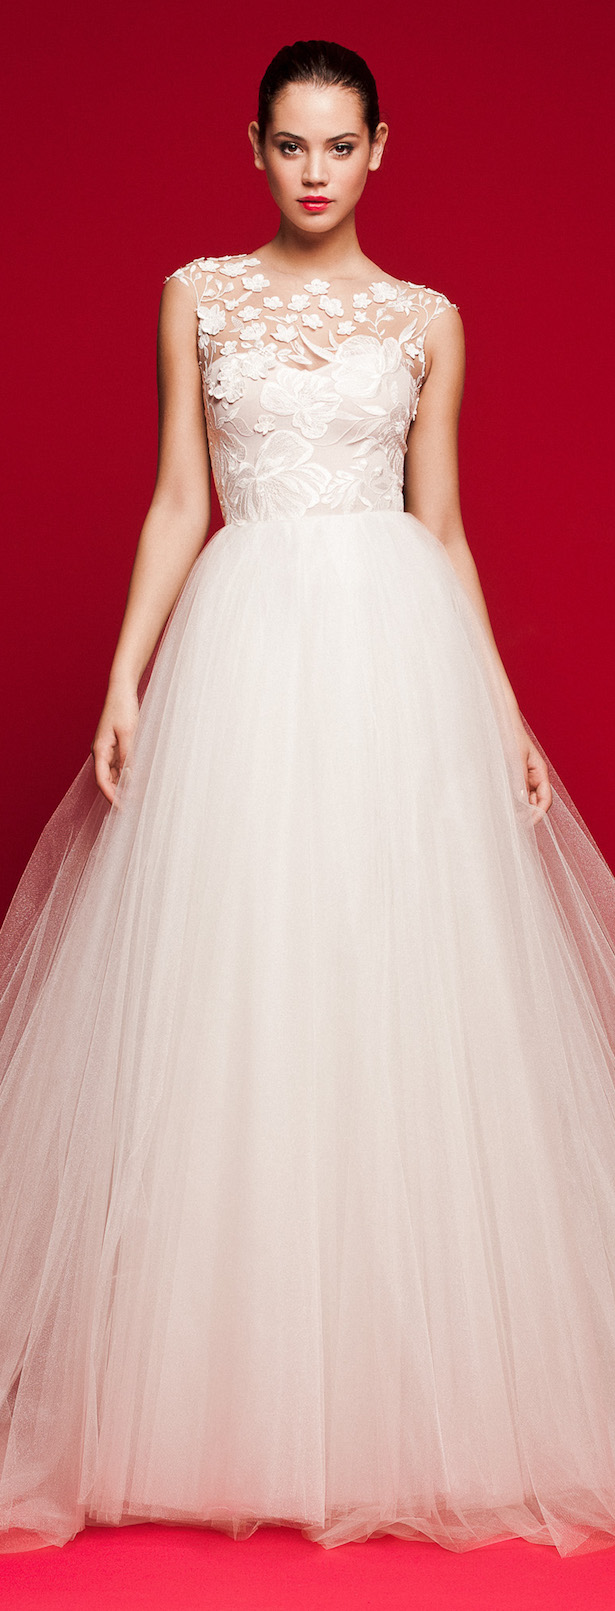 Daalarna 2018 Wedding Dress Love Story Bridal Collection